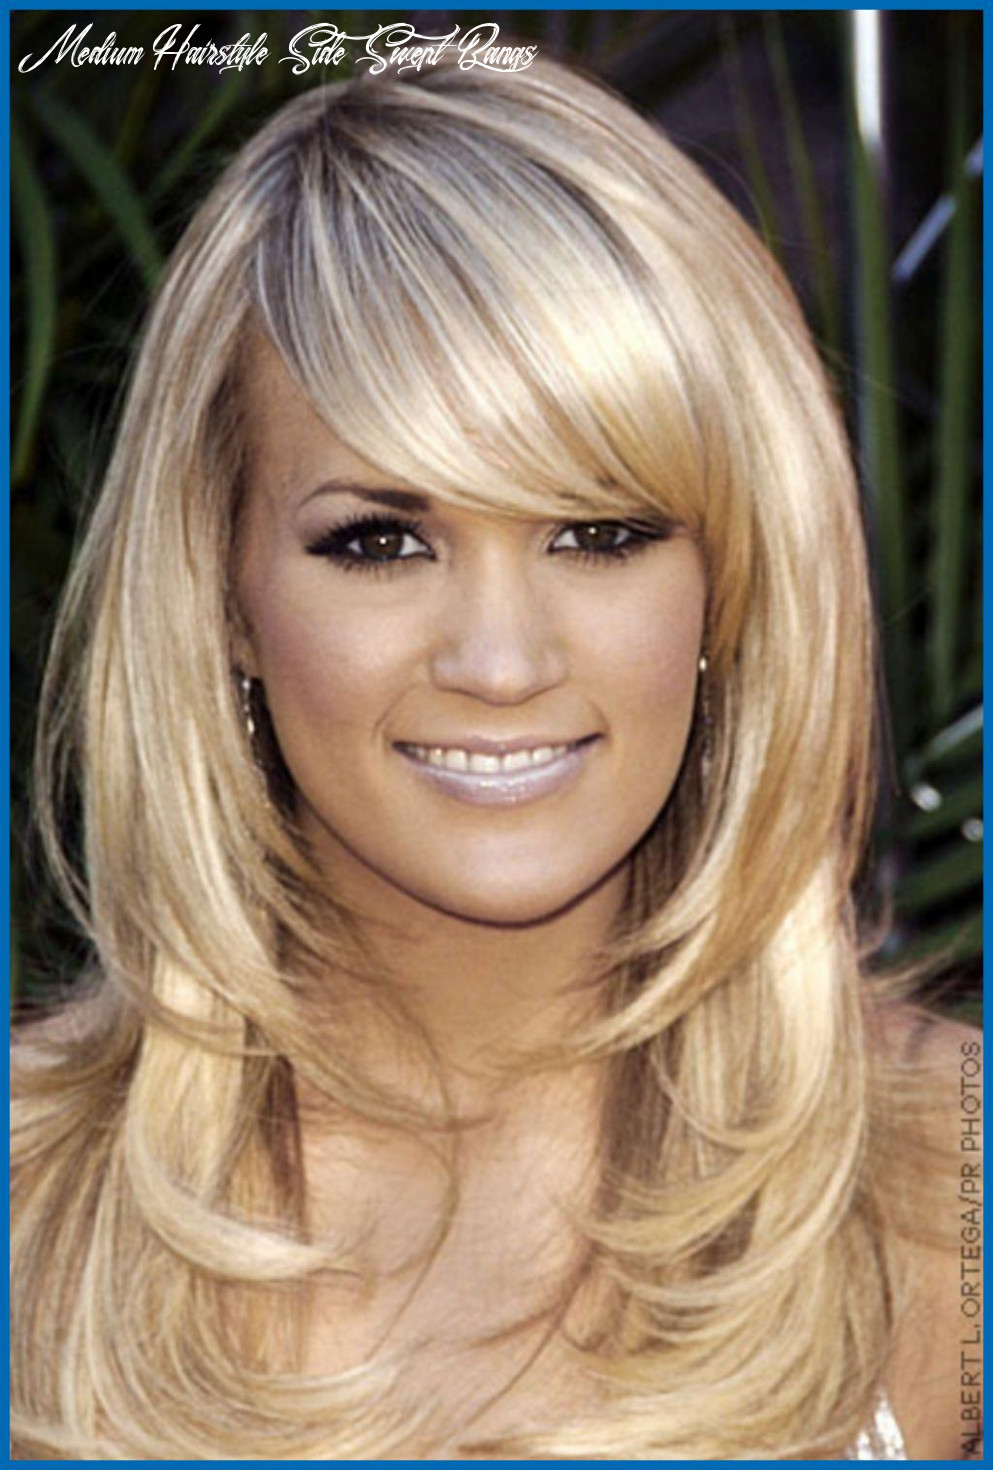 Medium Haircuts Side Swept Bangs | Find your Perfect Hair Style